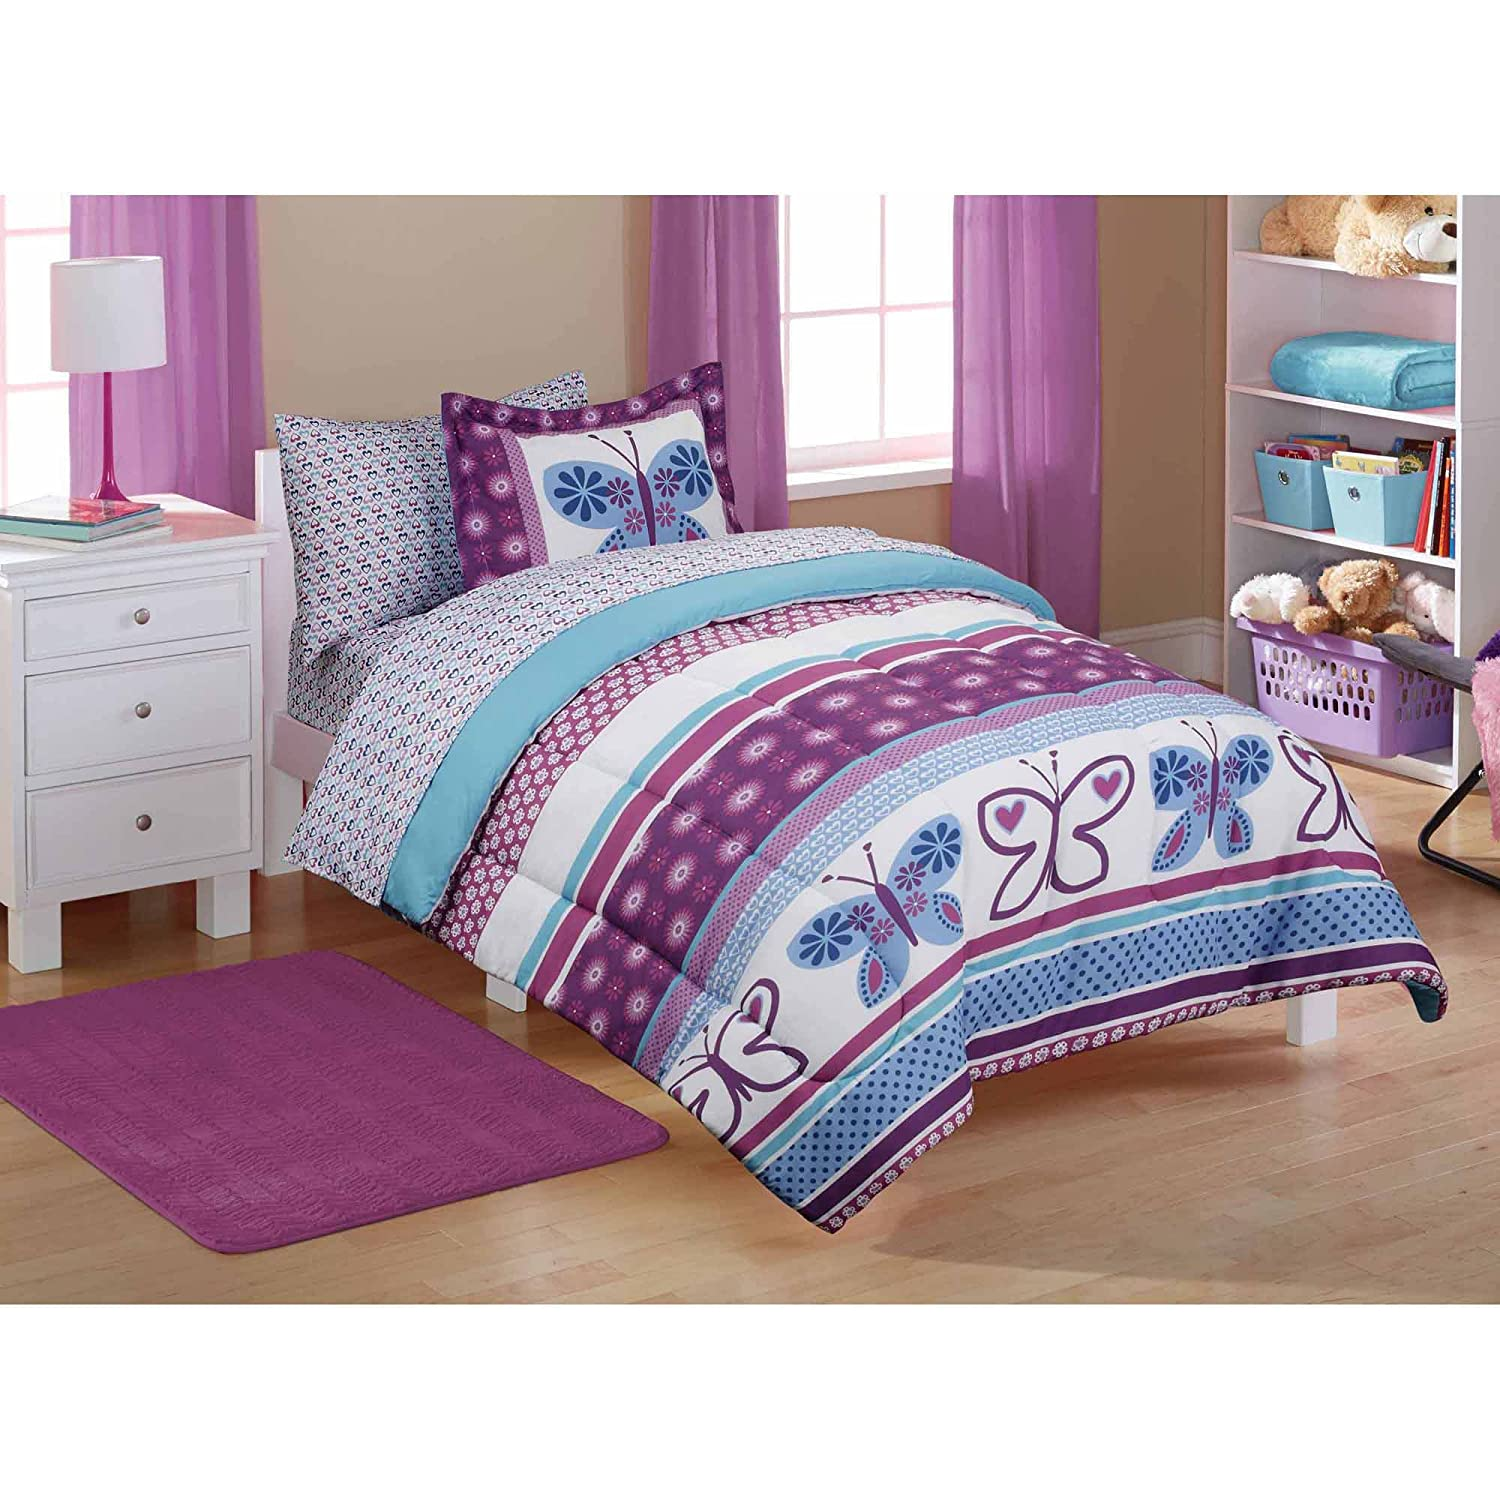 Amazon.com: 5pc Girl Purple Blue Butterfly Polka Dot Twin Comforter Set  (5pc Bed In A Bag): Home U0026 Kitchen